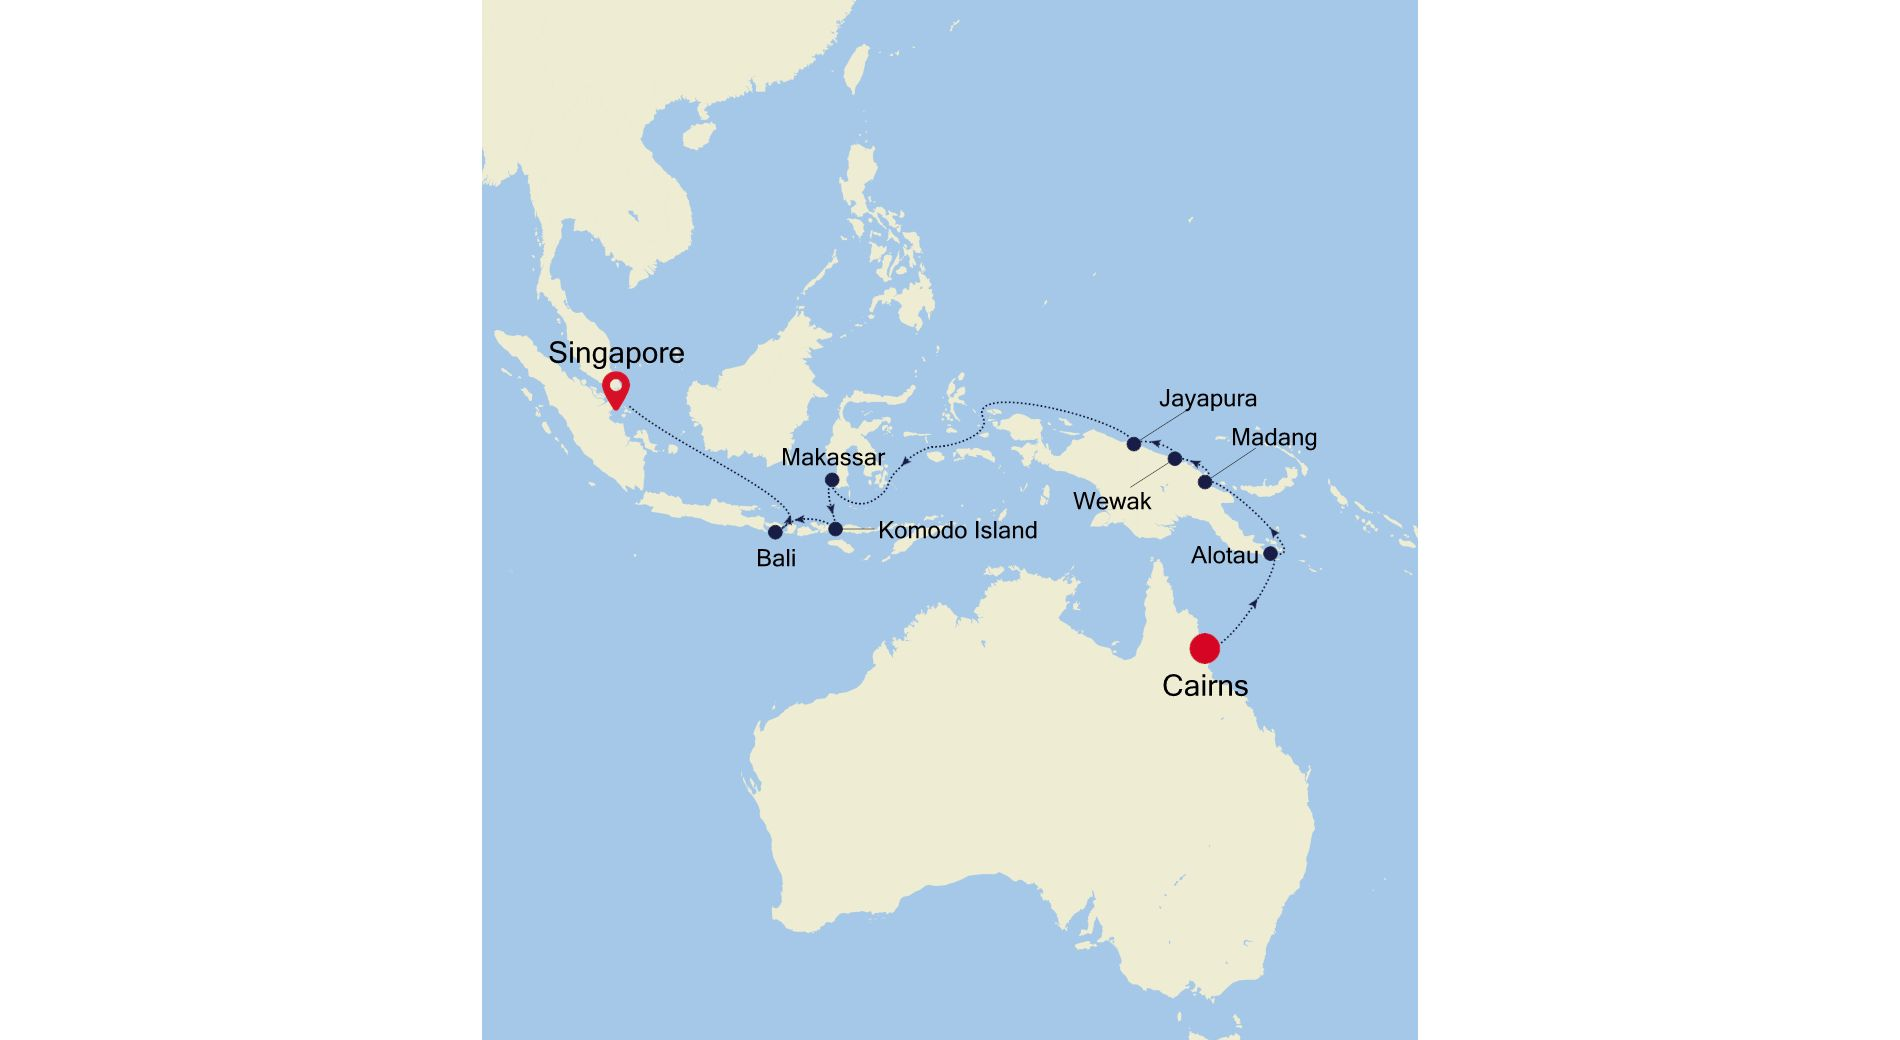 SS220420016 - Cairns to Singapore